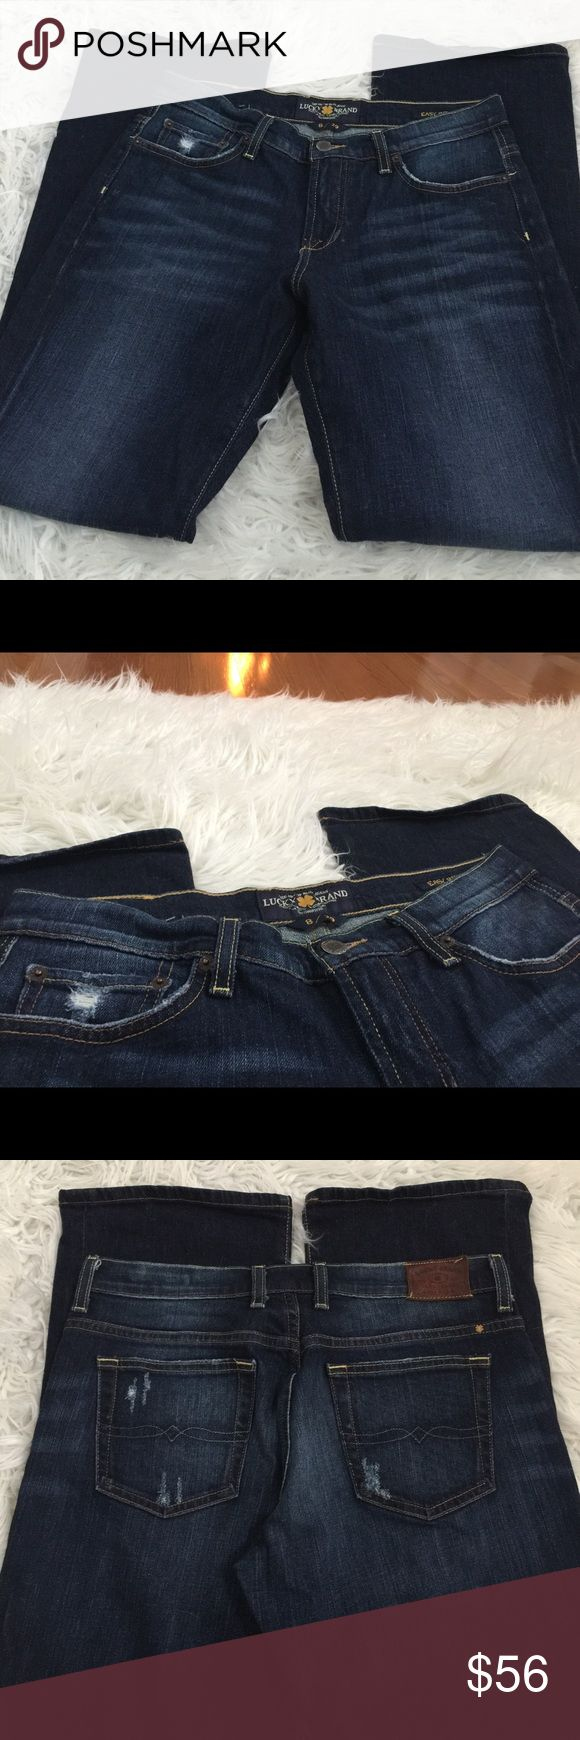 🍀Lucky Easy Rider Jeans Lucky Easy Rider Jeans. New without tags! Offers considered Lucky Brand Jeans